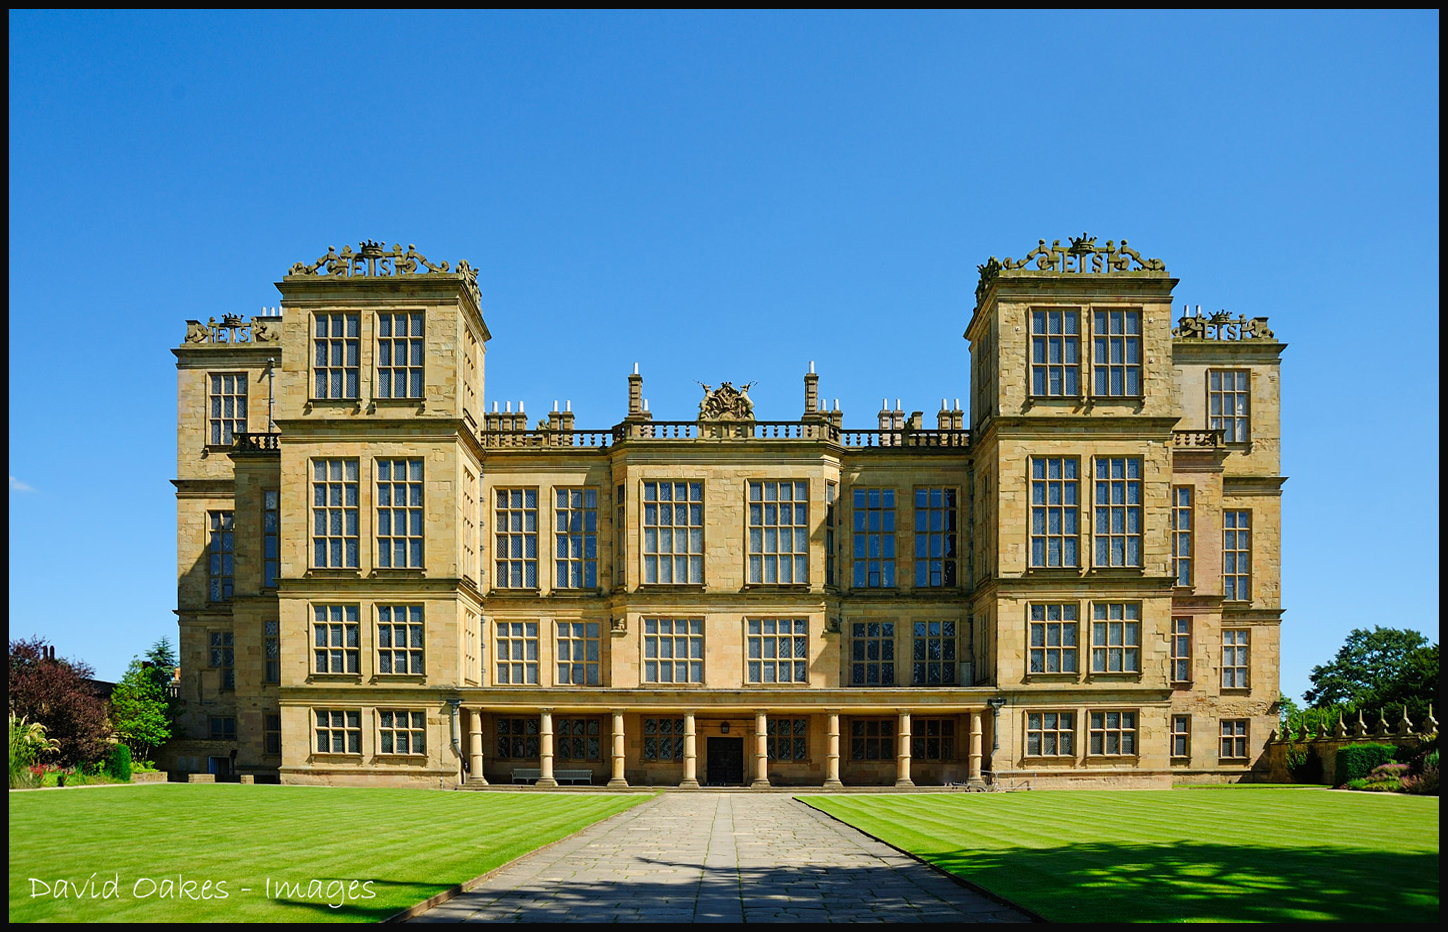 Hardwick Hall | DAVID OAKES -IMAGES.